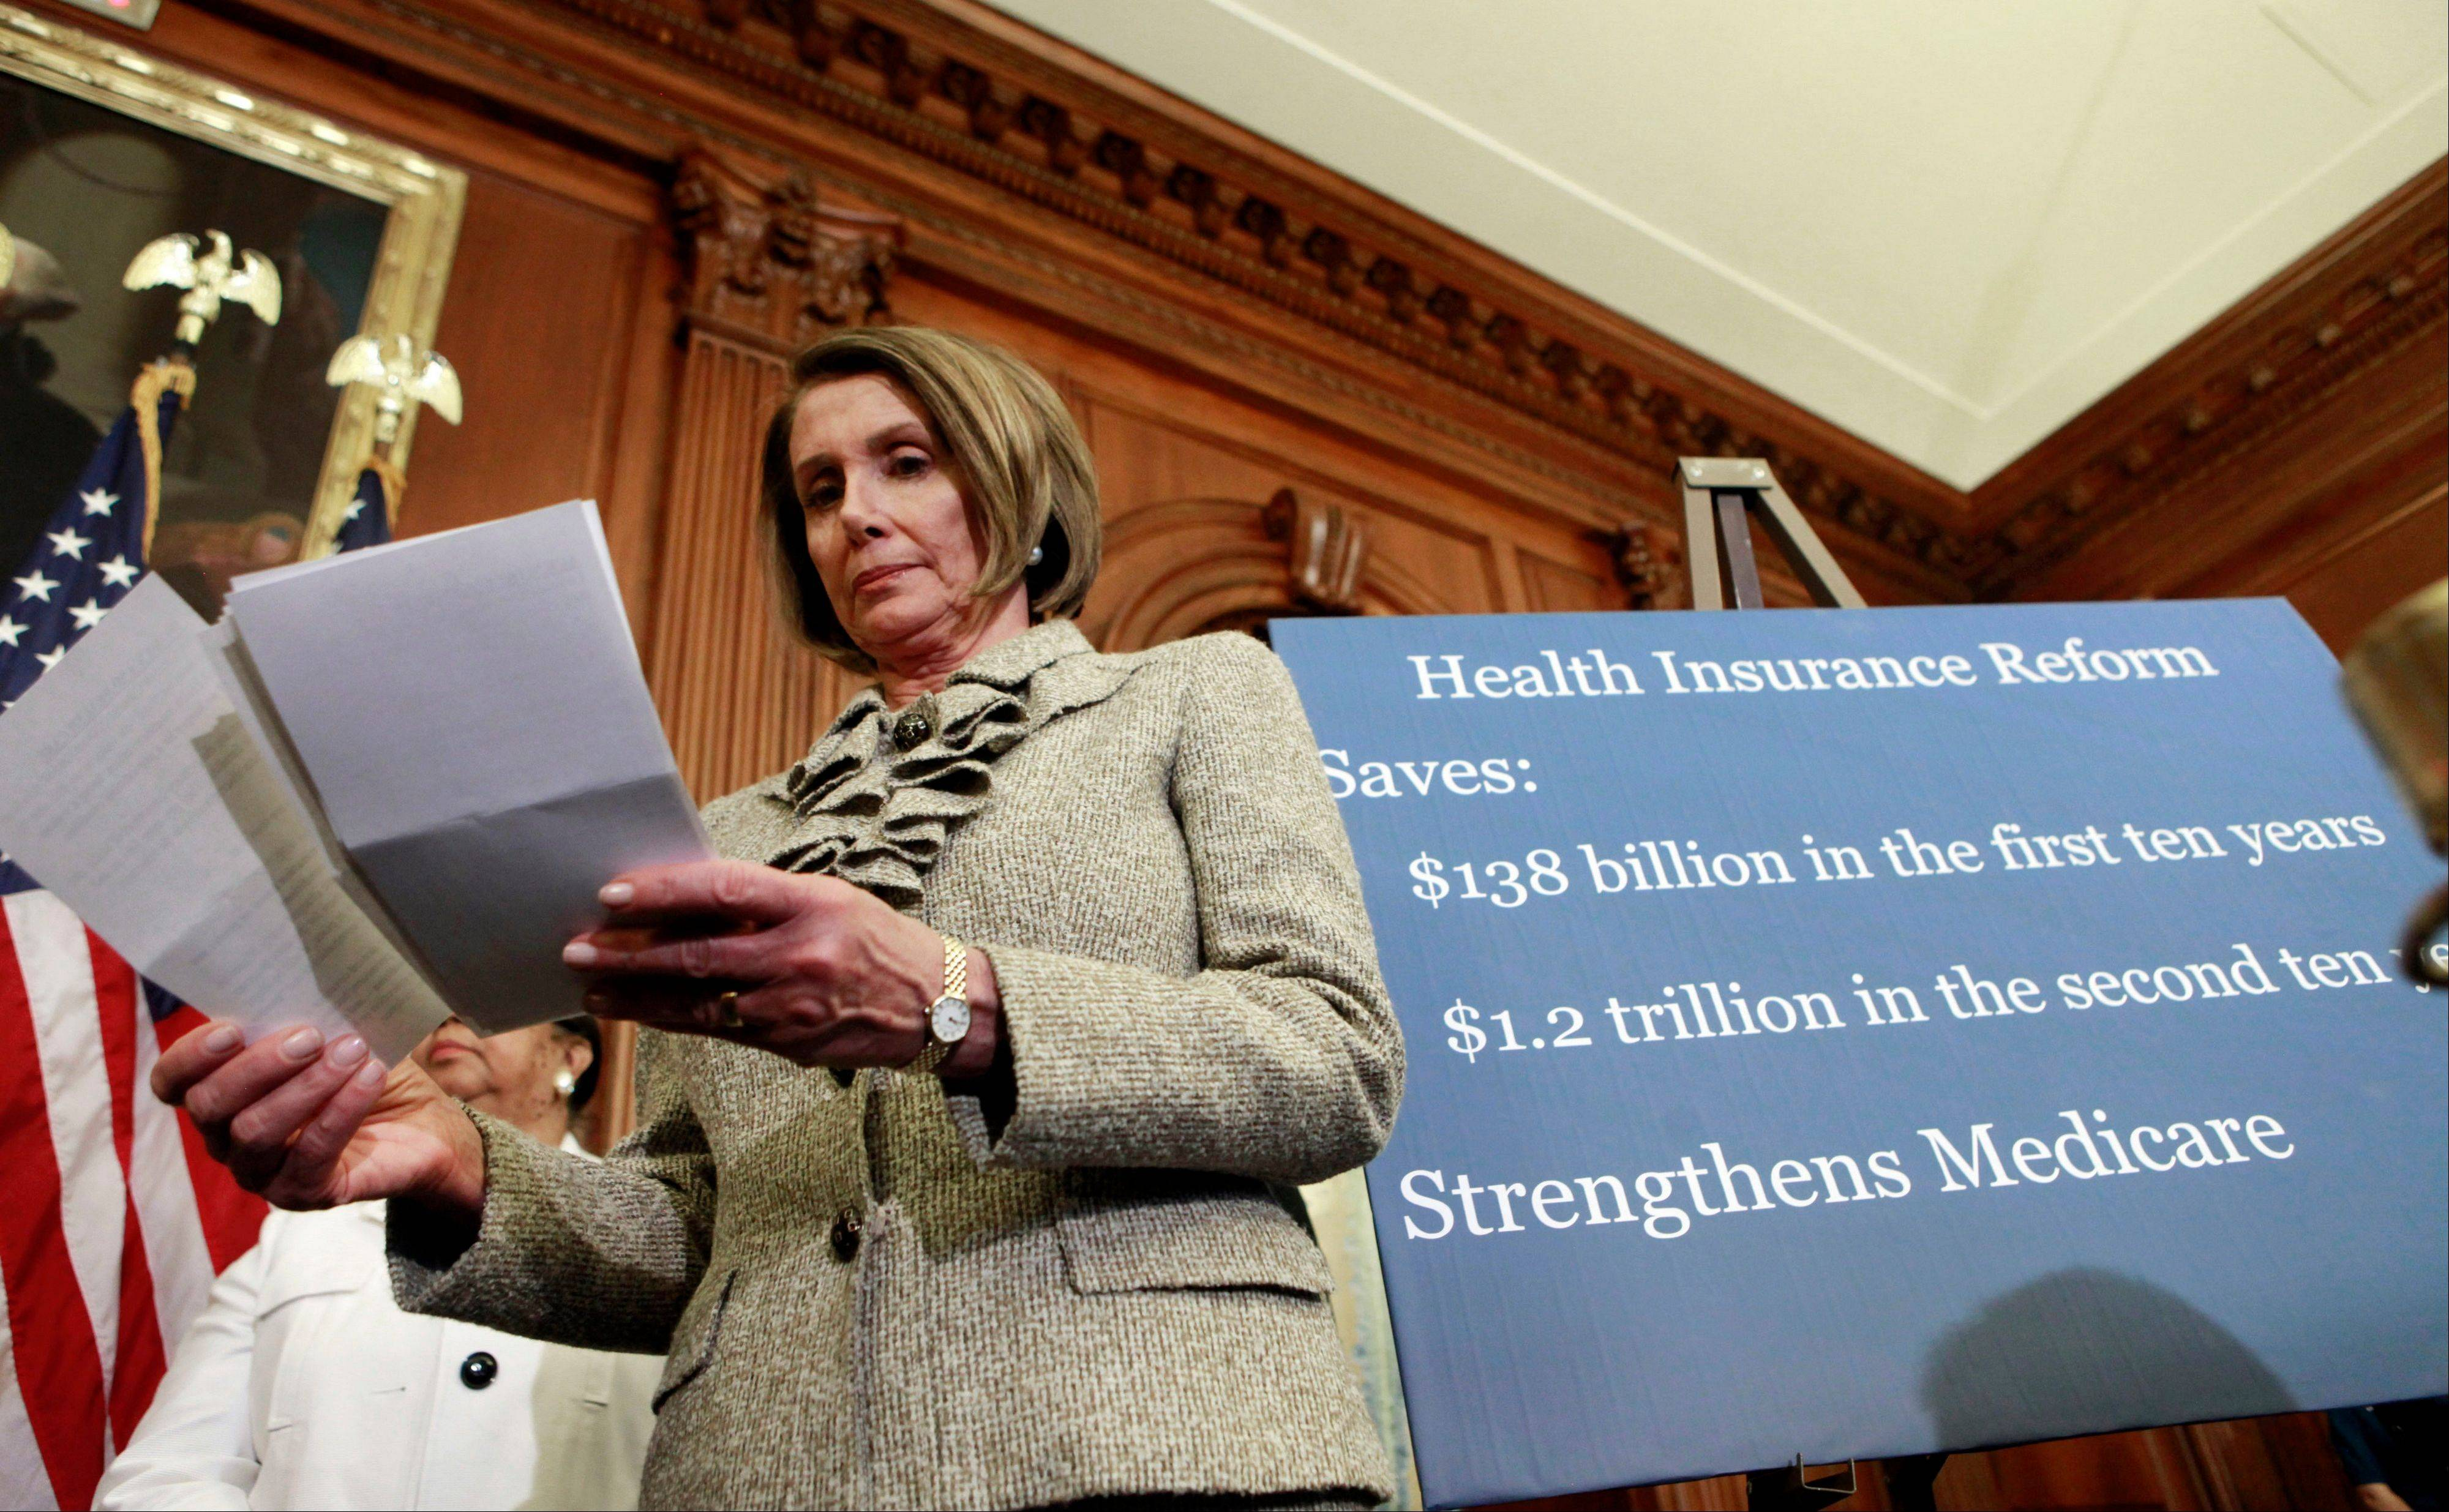 Then-House Speaker Nancy Pelosi, a California Democrat, looks over her notes during a news conference on health care on Capitol Hill in Washington. Some Americans could see their insurance costs double this year as the U.S. health care overhaul expands coverage to millions of people.